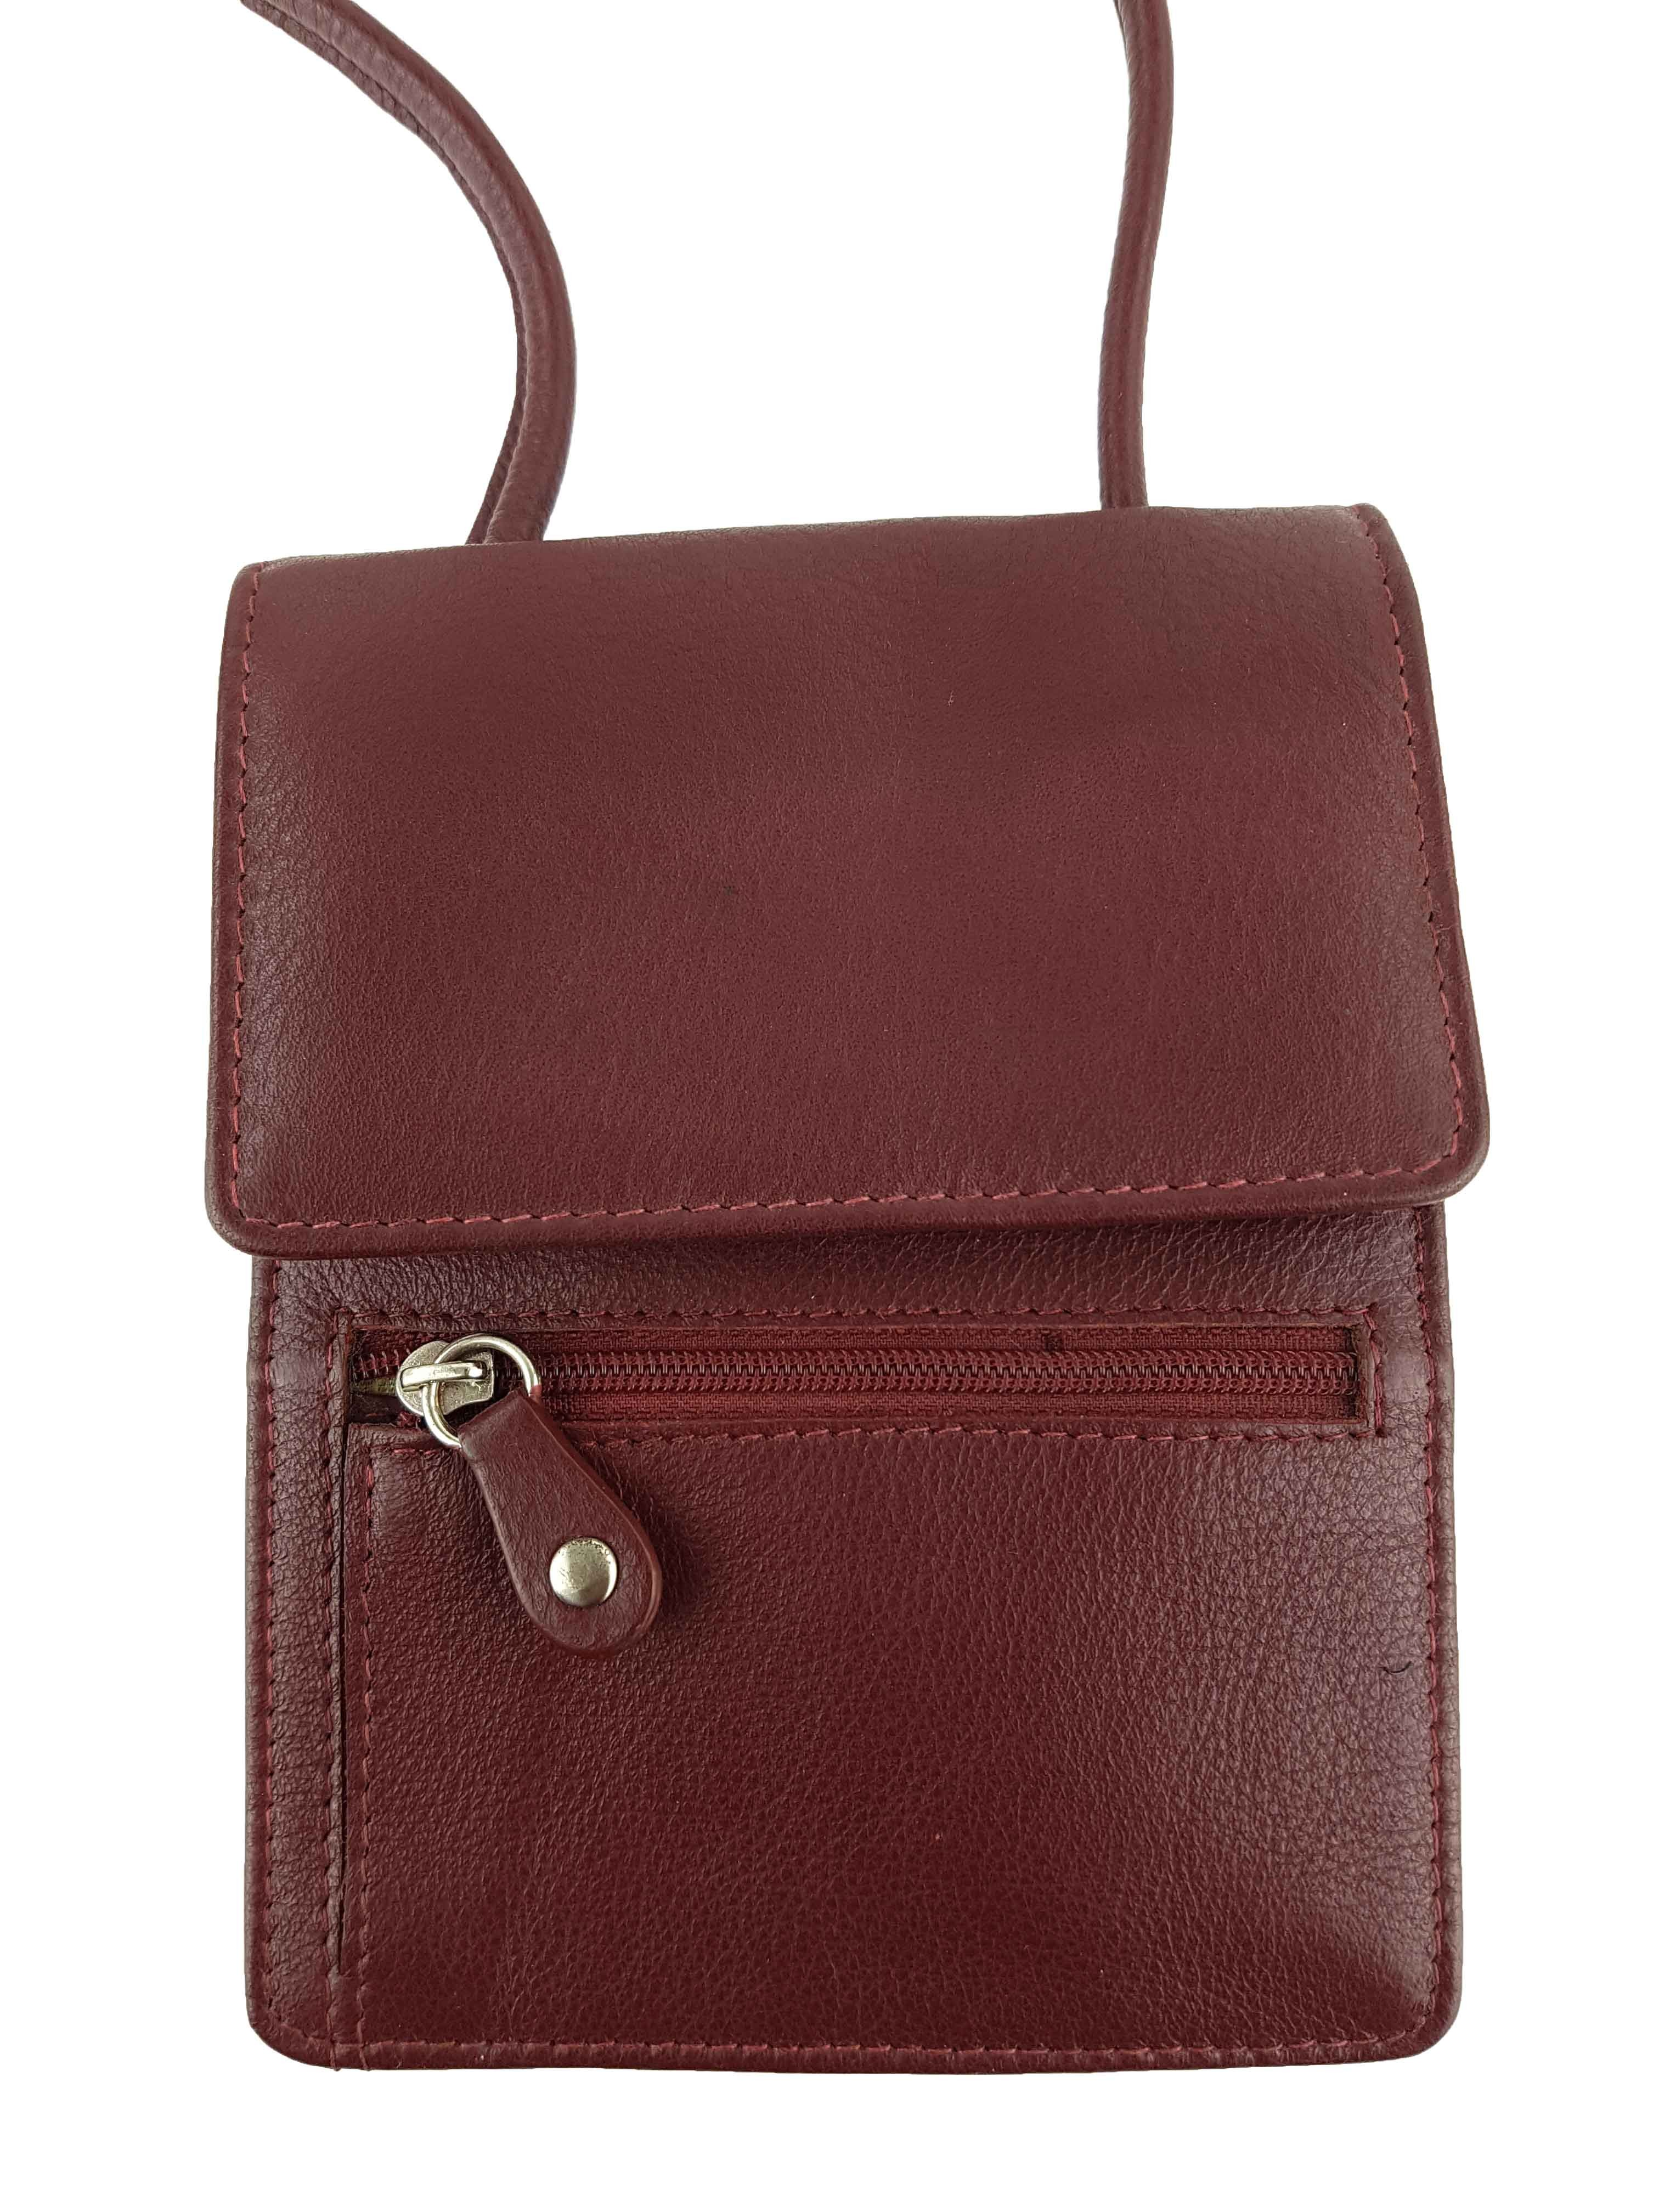 e80772d8 475P Red Full Grain Leather Travel Pouch